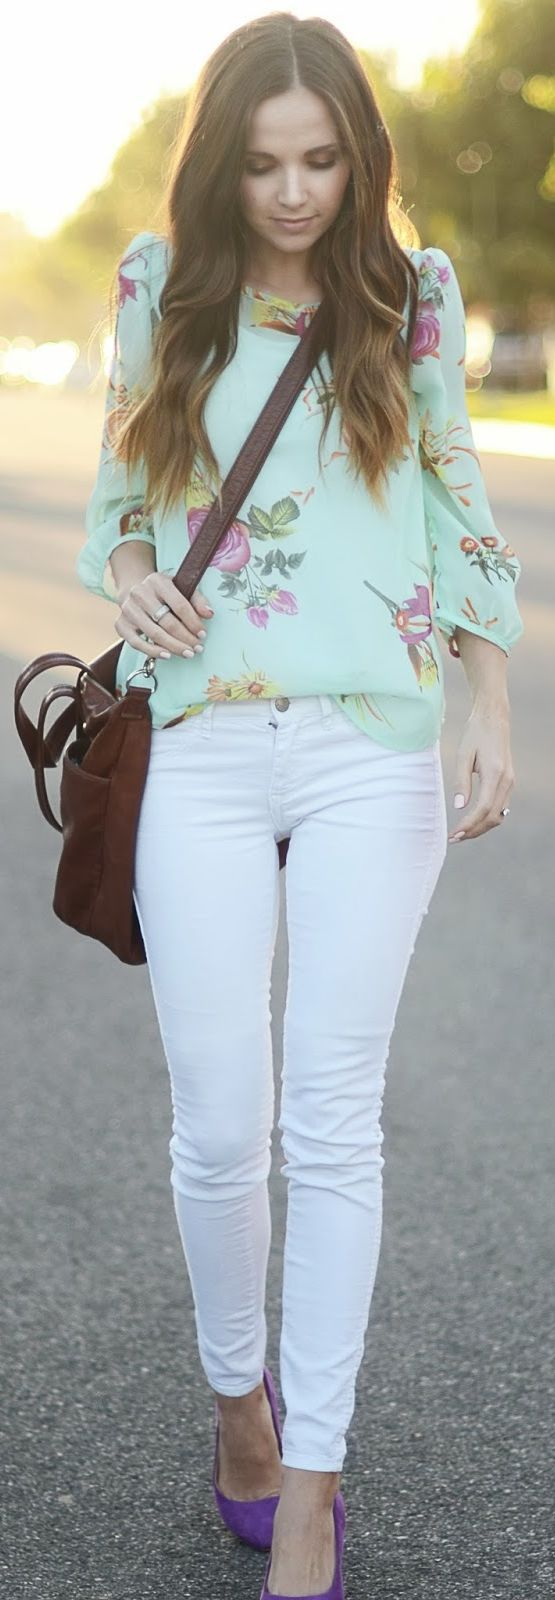 Spring Pastels: Mint - I like the idea of a floral top with white jeans but this top doesn't have enough pattern for me